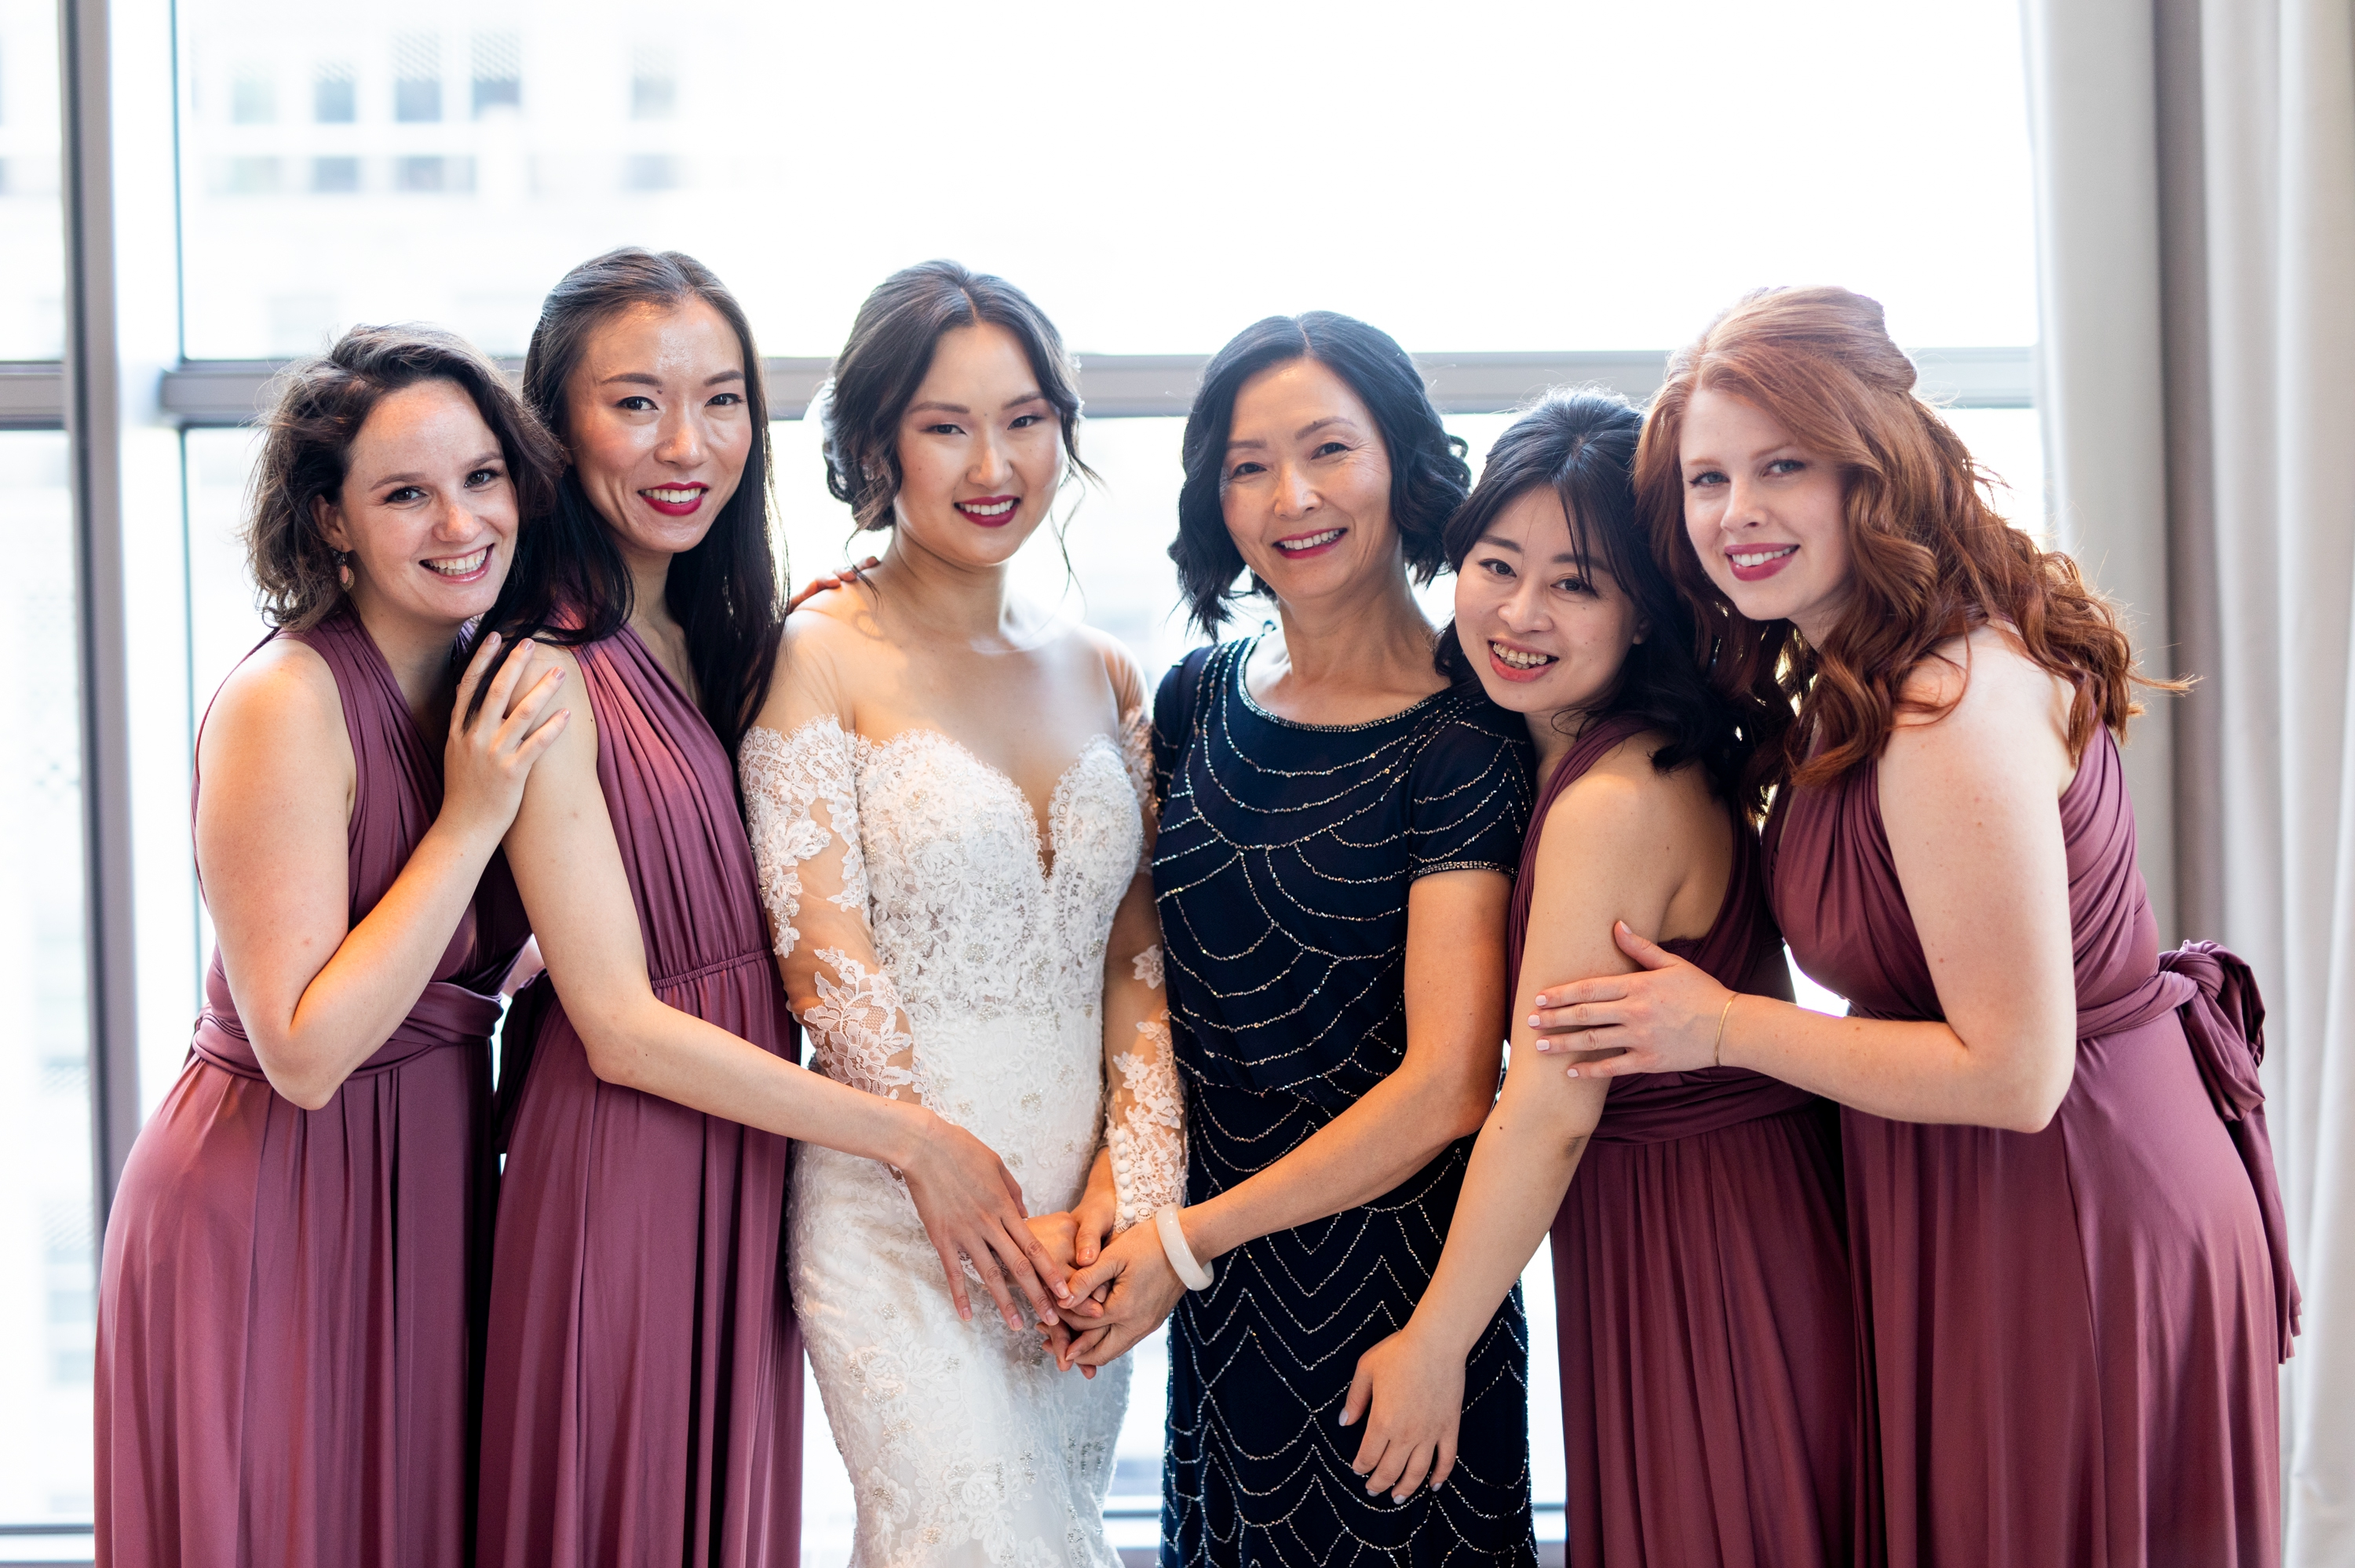 Bridesmaids Four Seasons Chinese Wedding Zsuzsi Pal Photography Cindy Brian